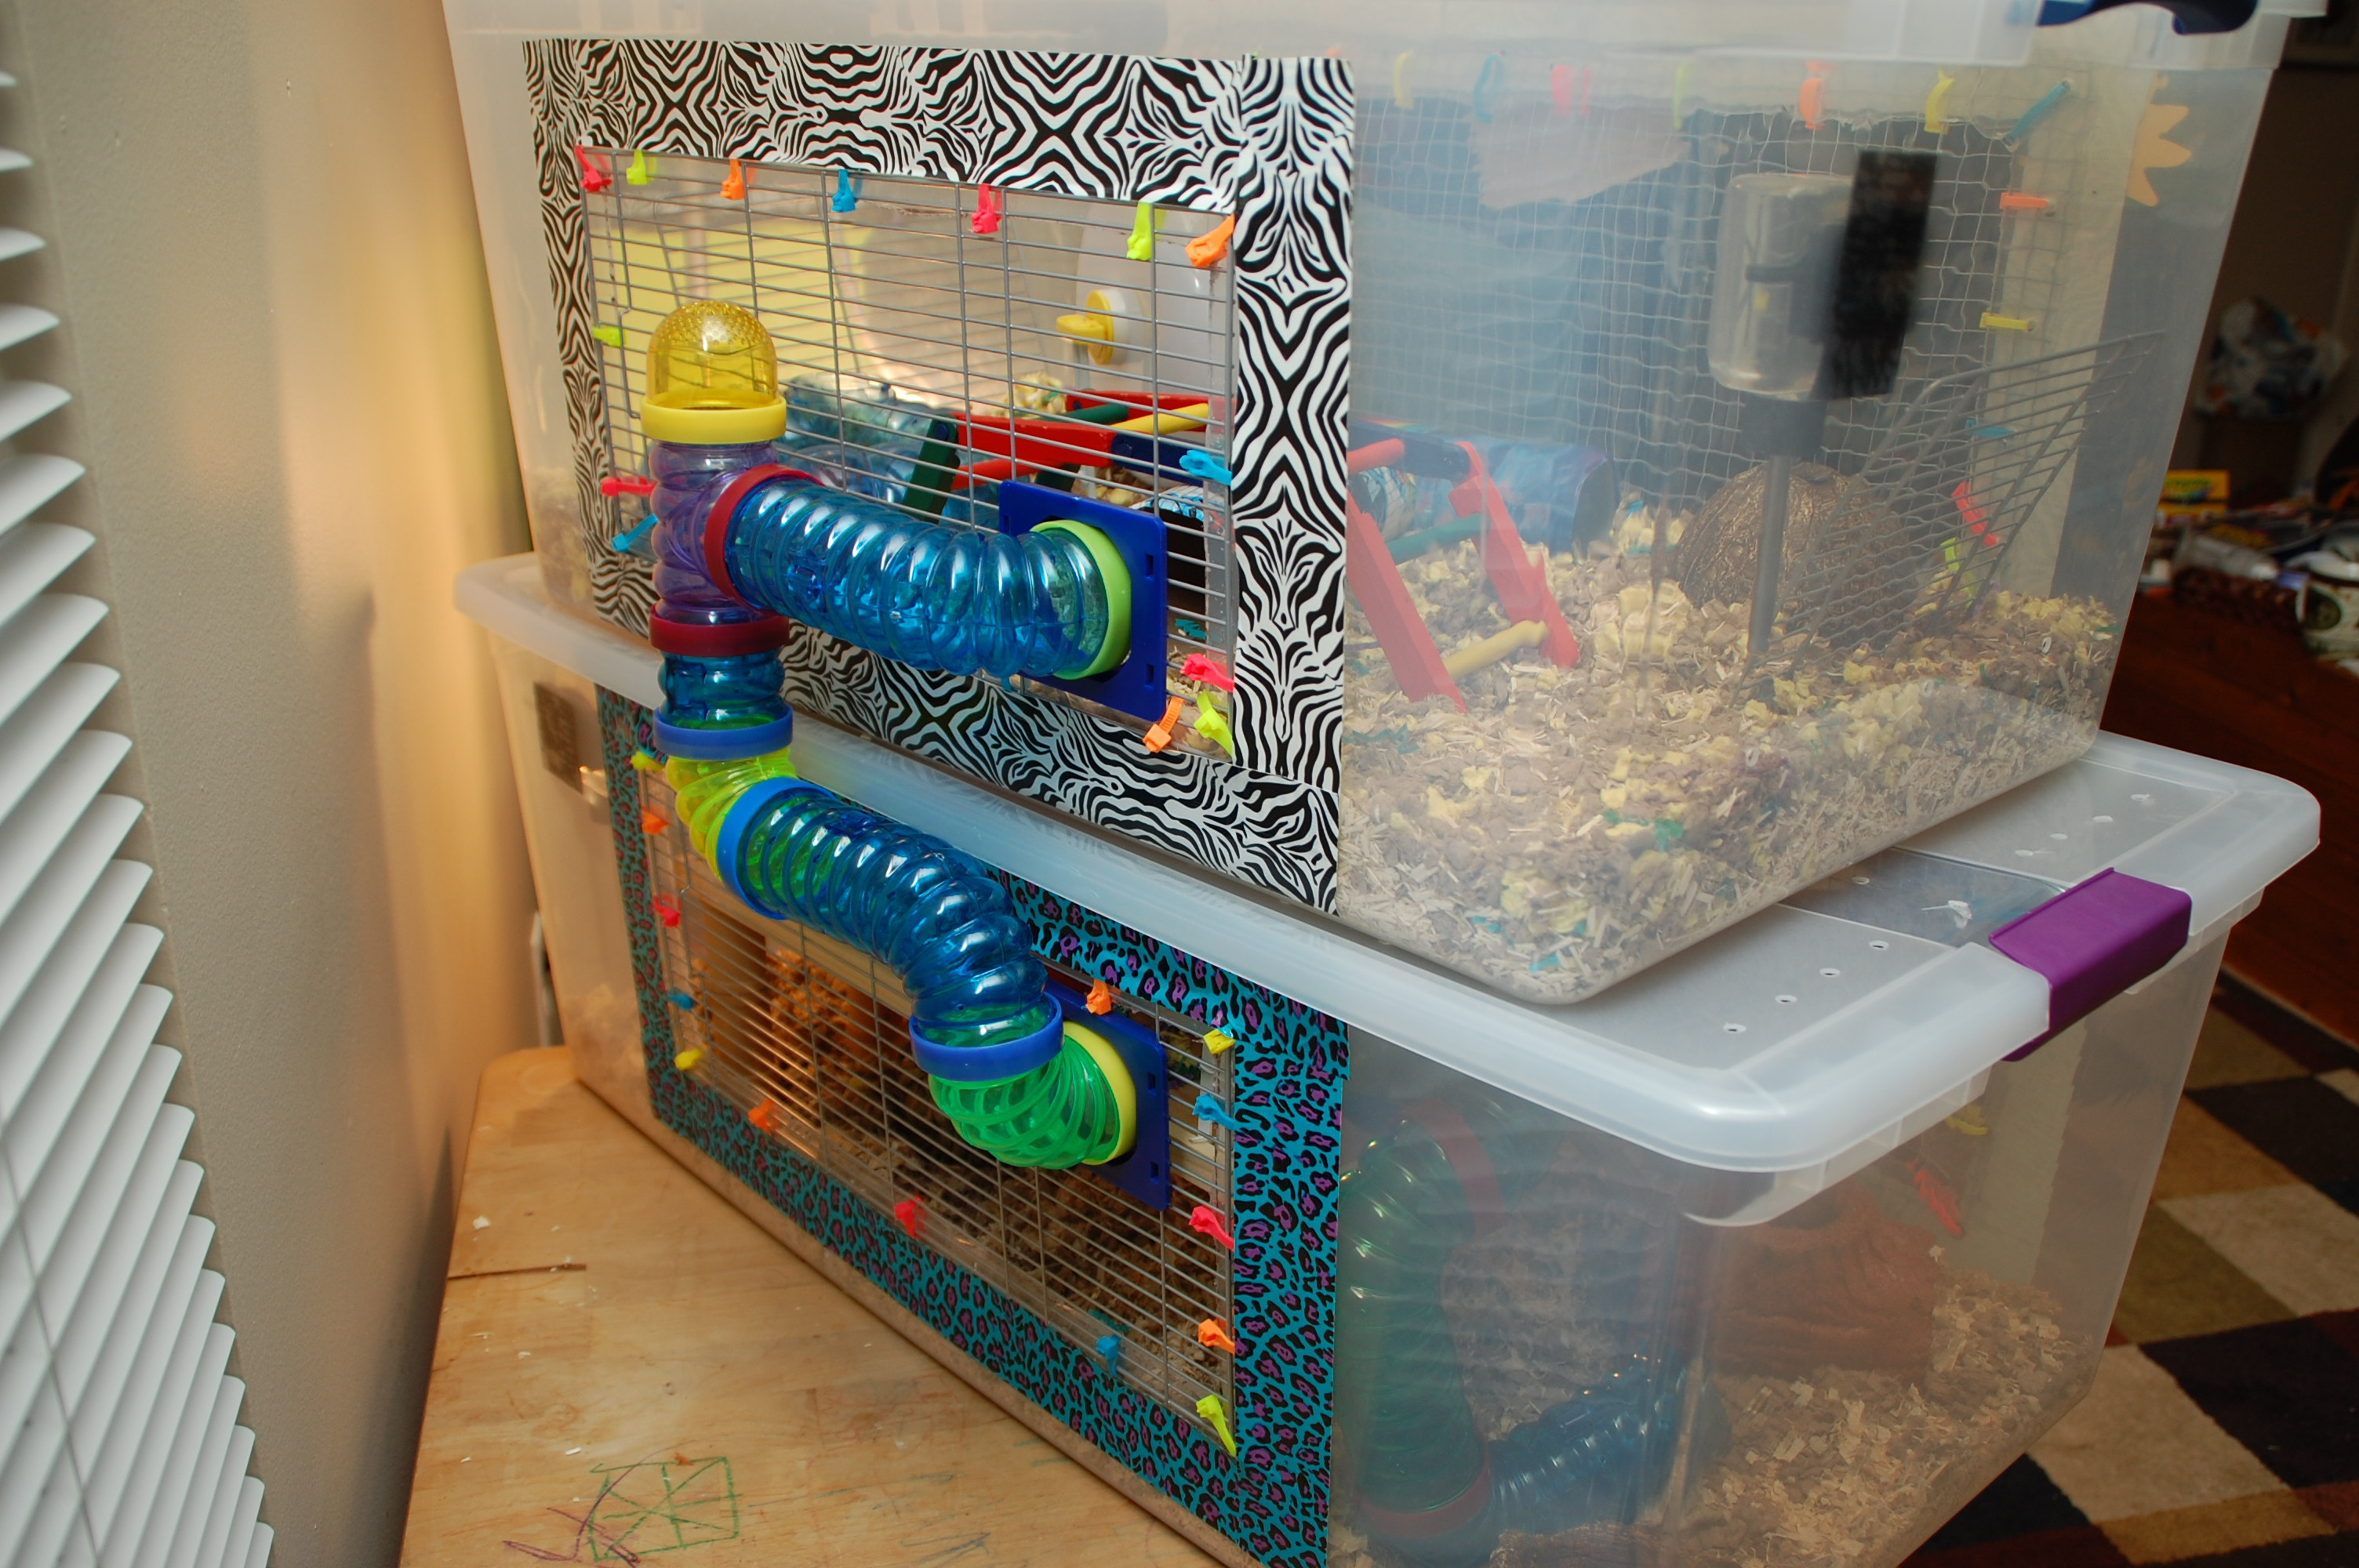 Best ideas about DIY Hamster Cage . Save or Pin DIY Hamster Cage Bin Cage Now.